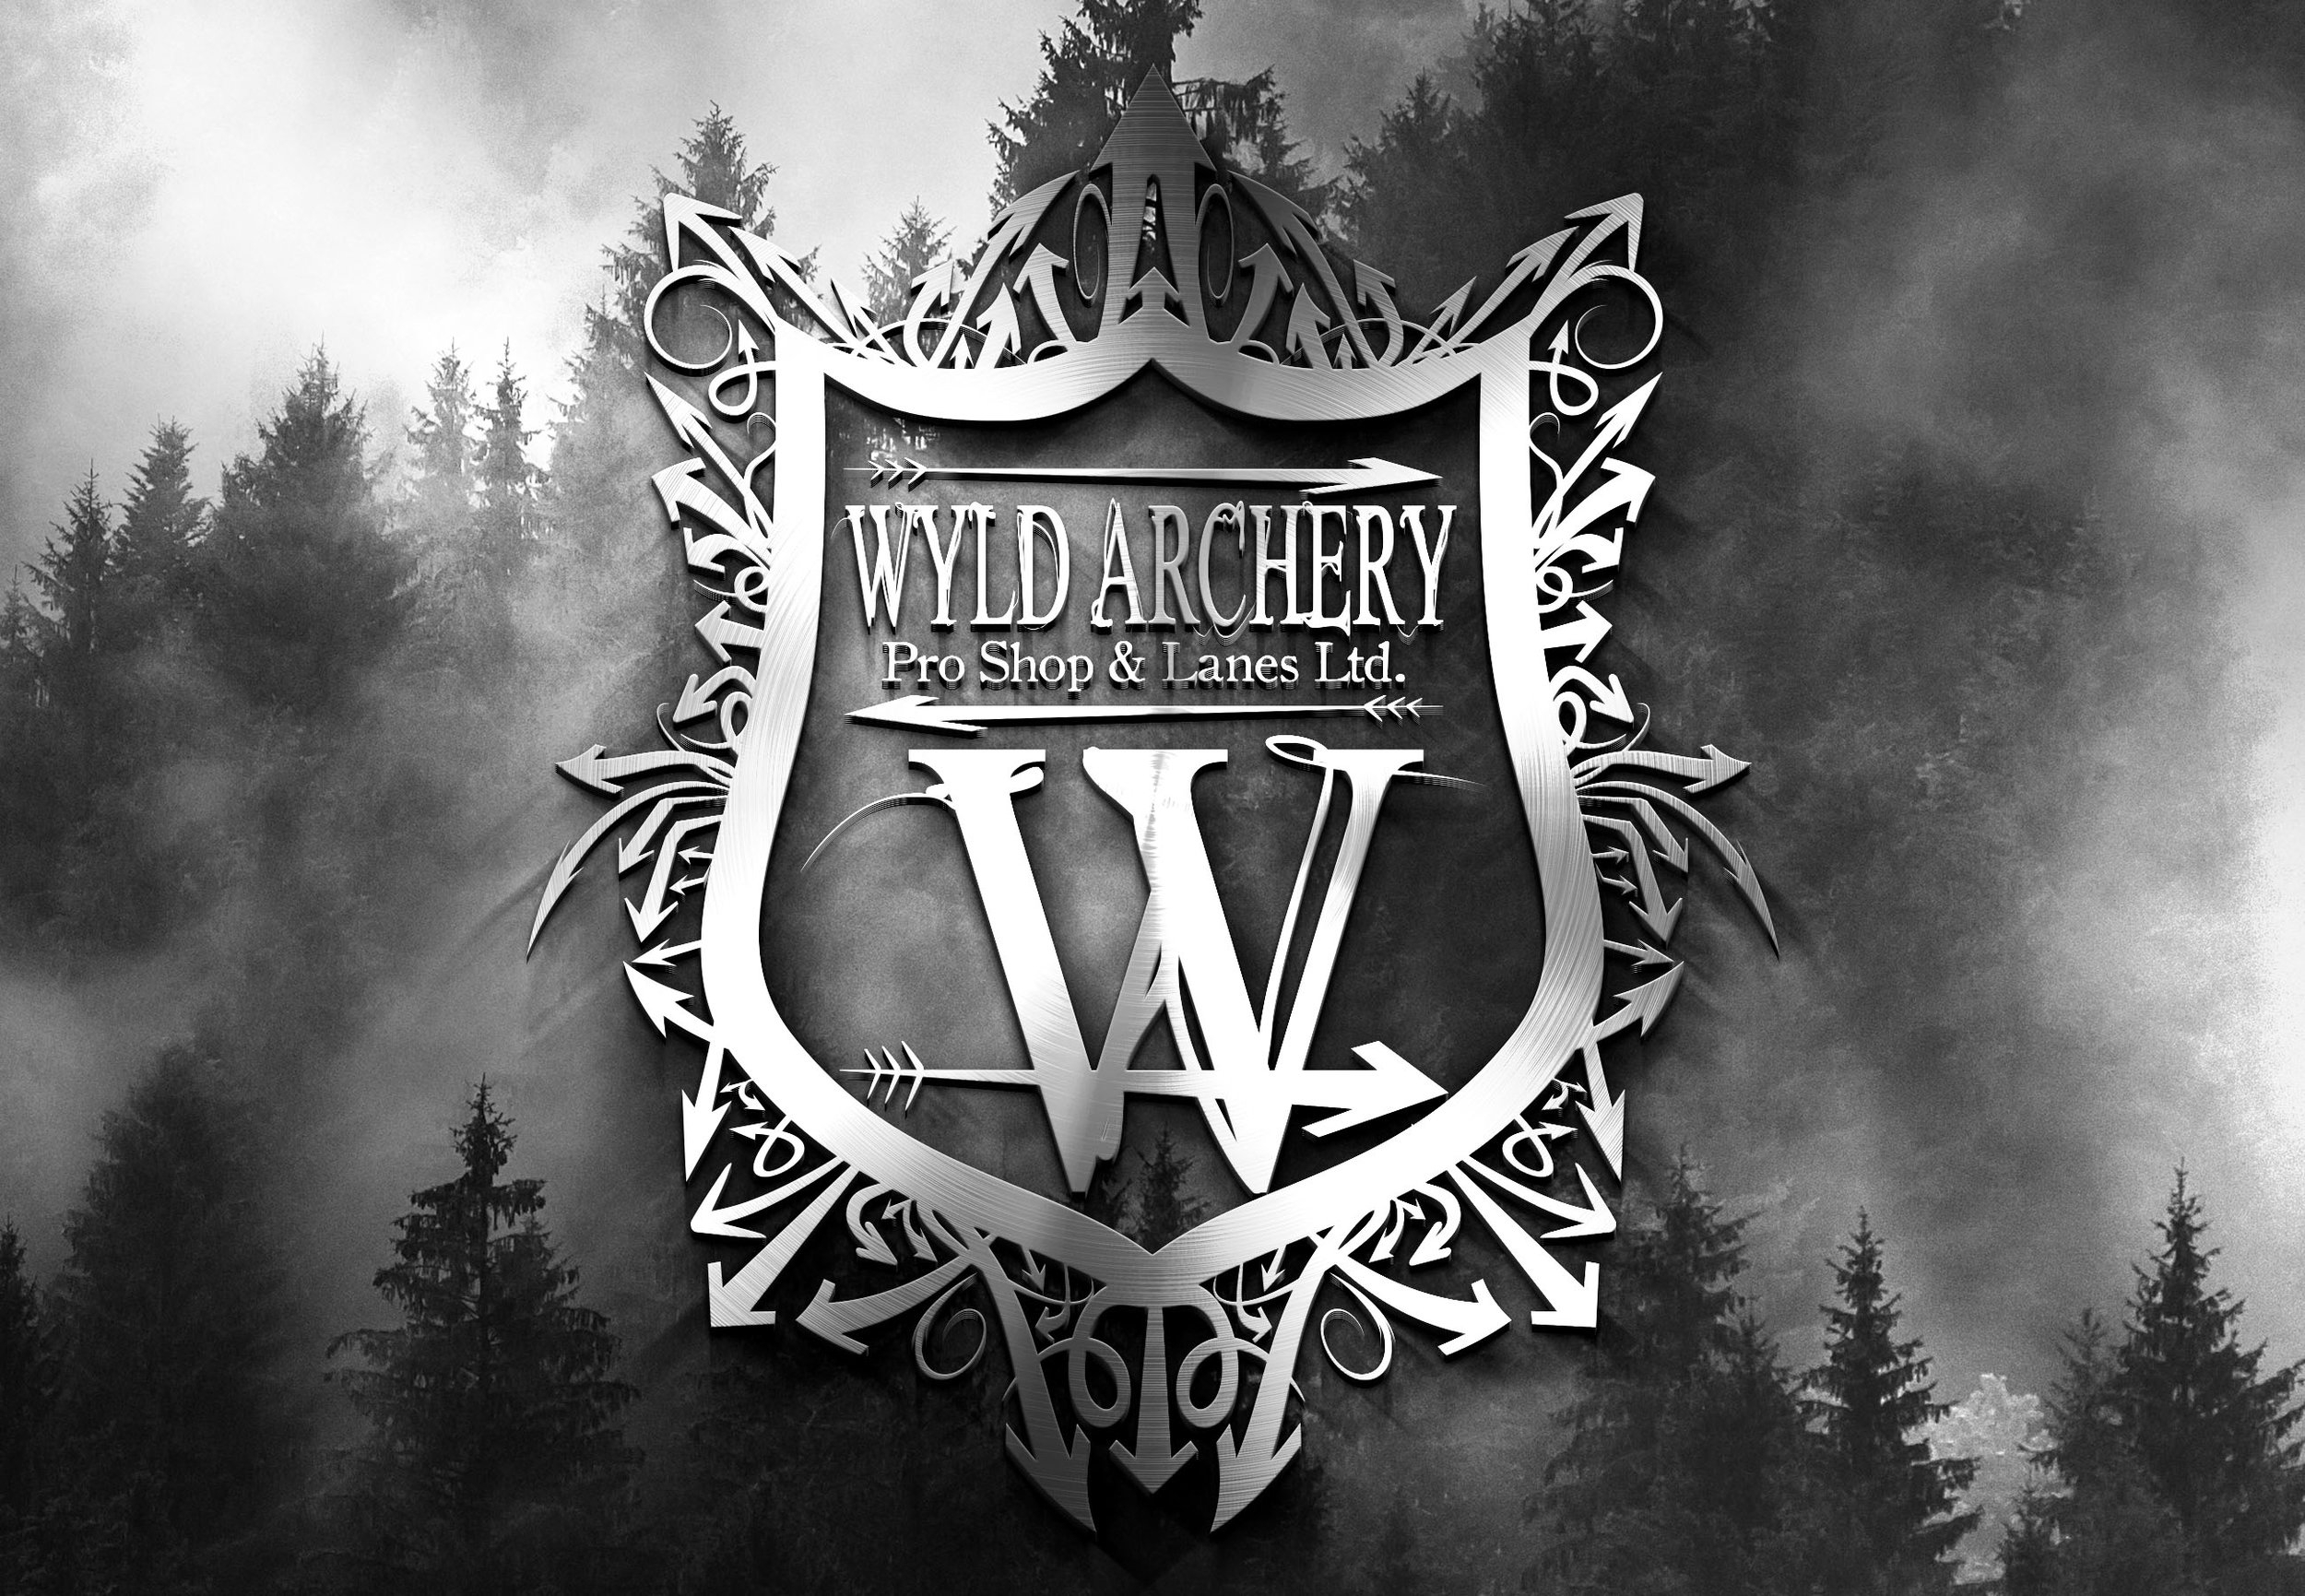 WYLD ARCHERY PRO SHOP & LANES LTD.